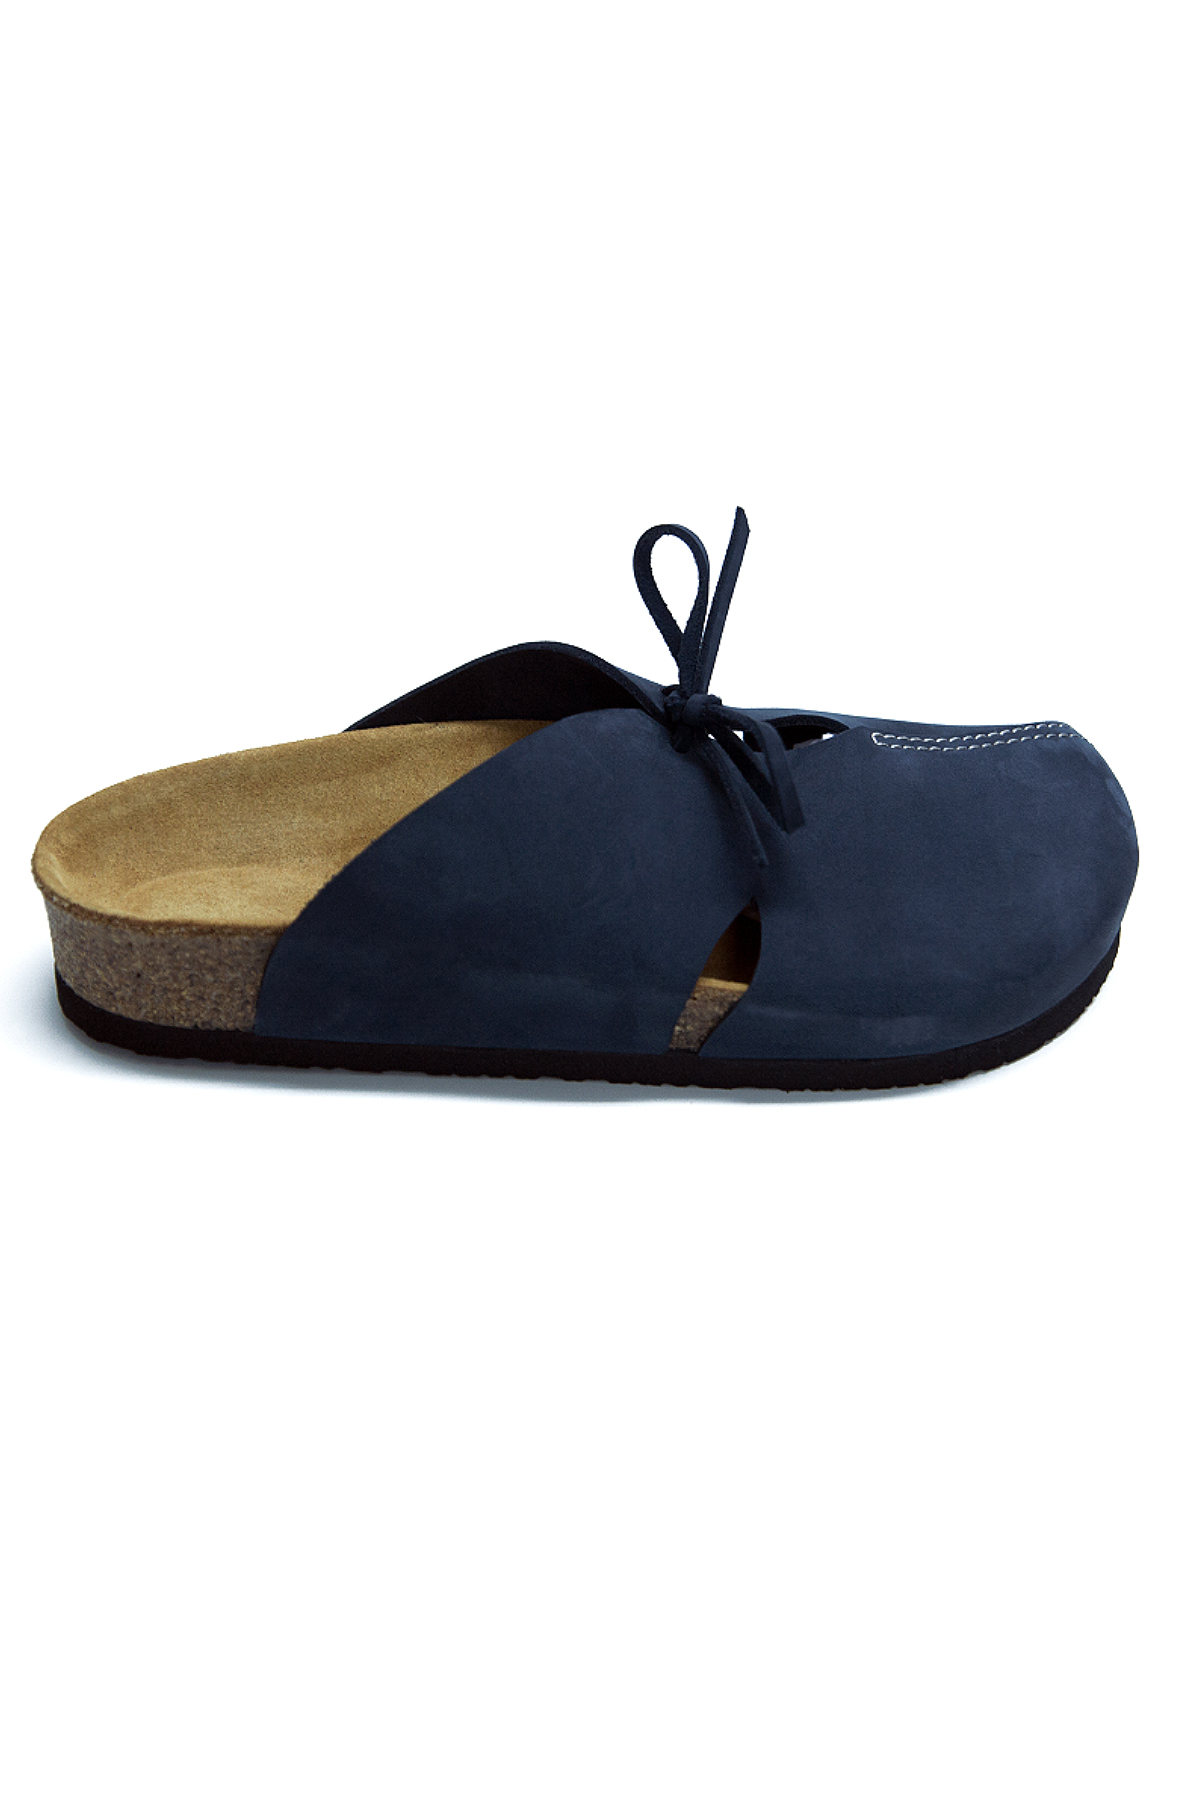 HERA Navy Blue Clogs Anatomical Natural Cork Sole Real Leather Women Sandals